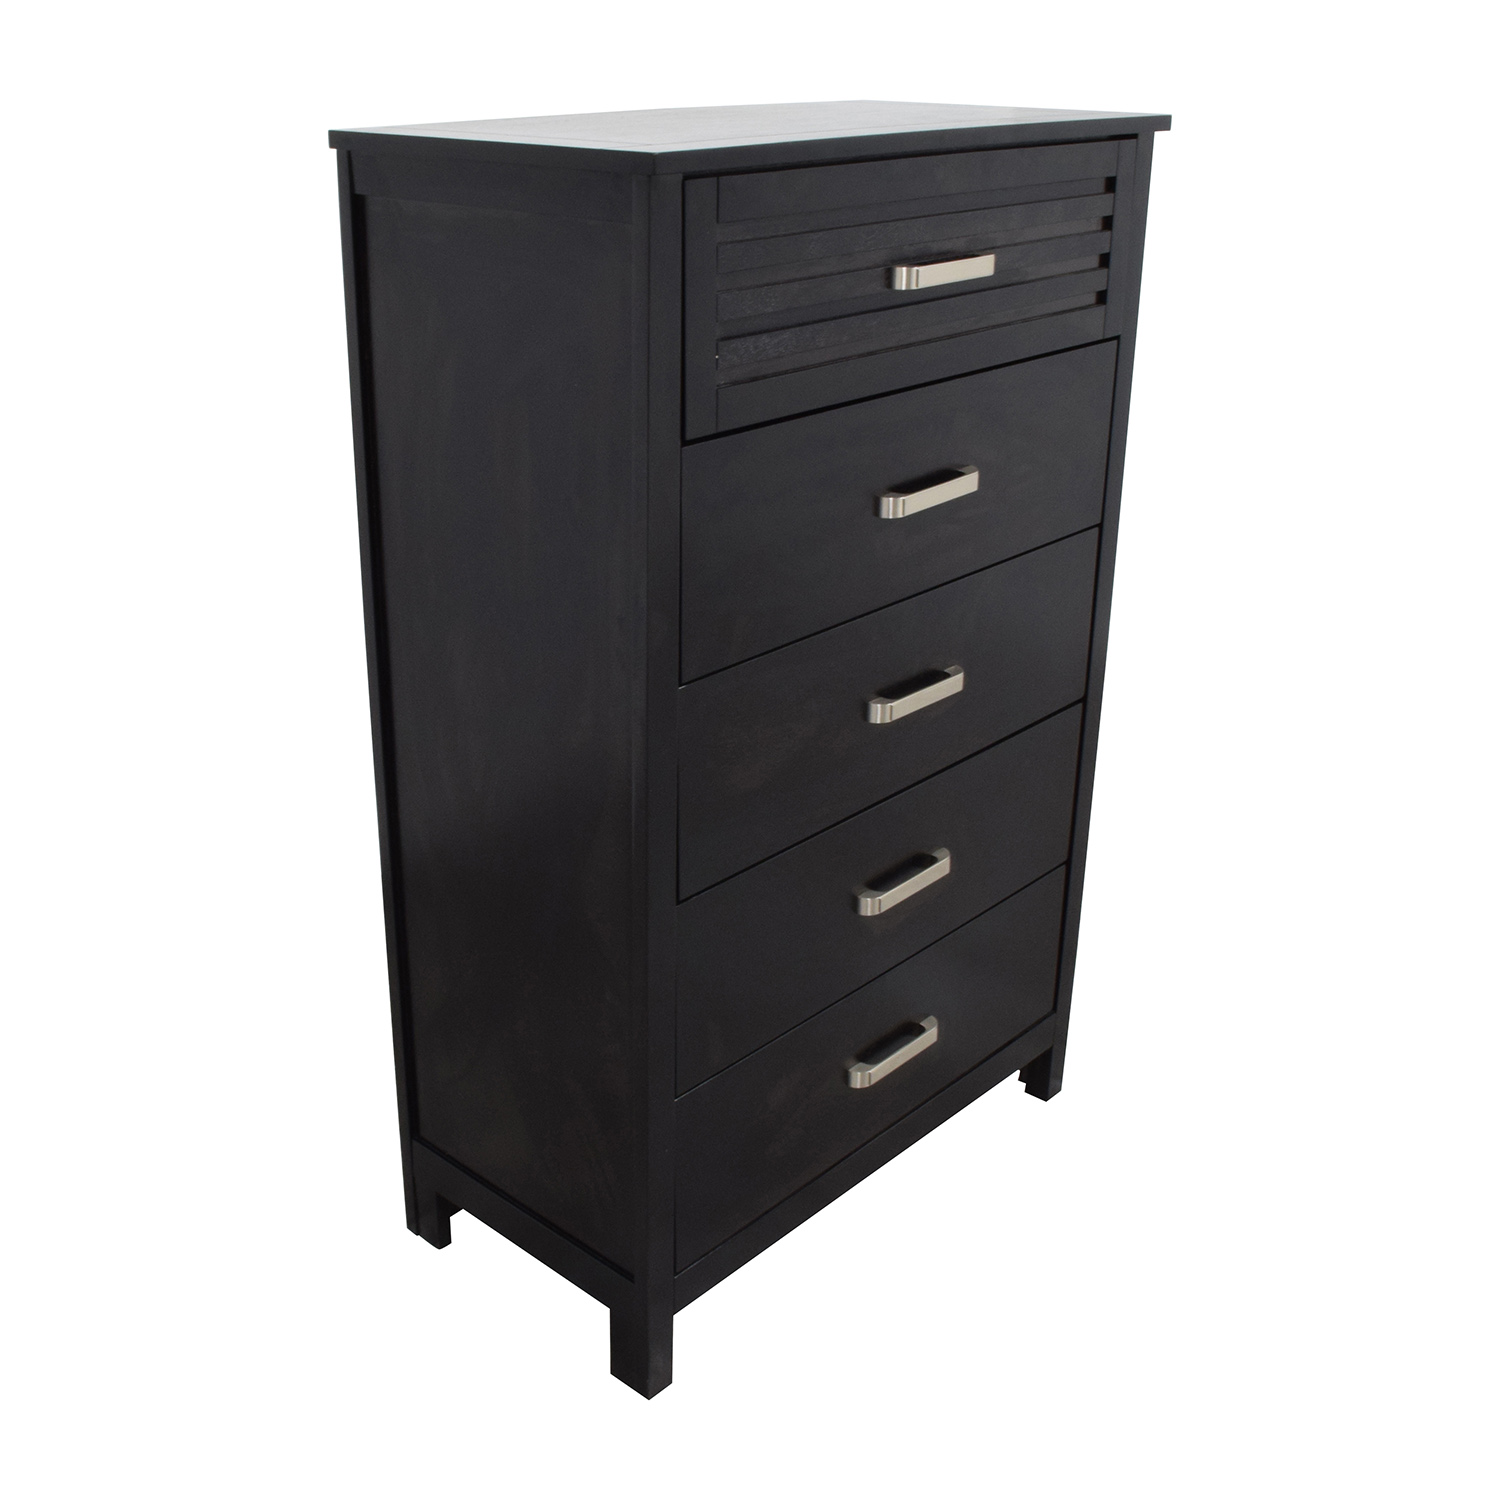 ... Bobu0027s Furniture Bobu0027s Furniture Dalton Espresso Chest Dressers